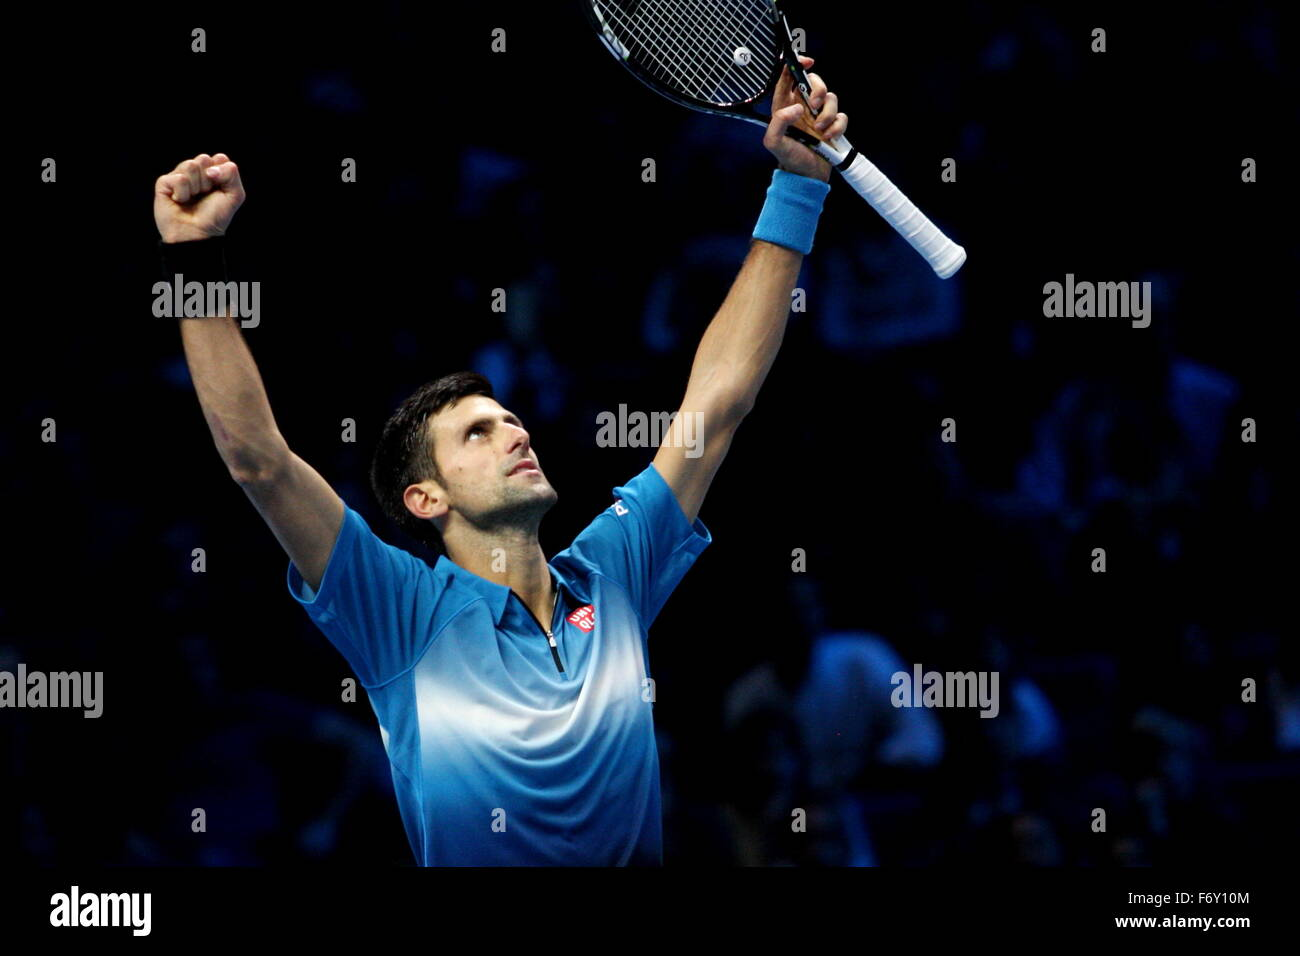 London, UK. 21st Nov, 2015. Barclays ATP World Tour Finals, Novak Djokovic (SRB) celebrates on court after his win - Stock Image